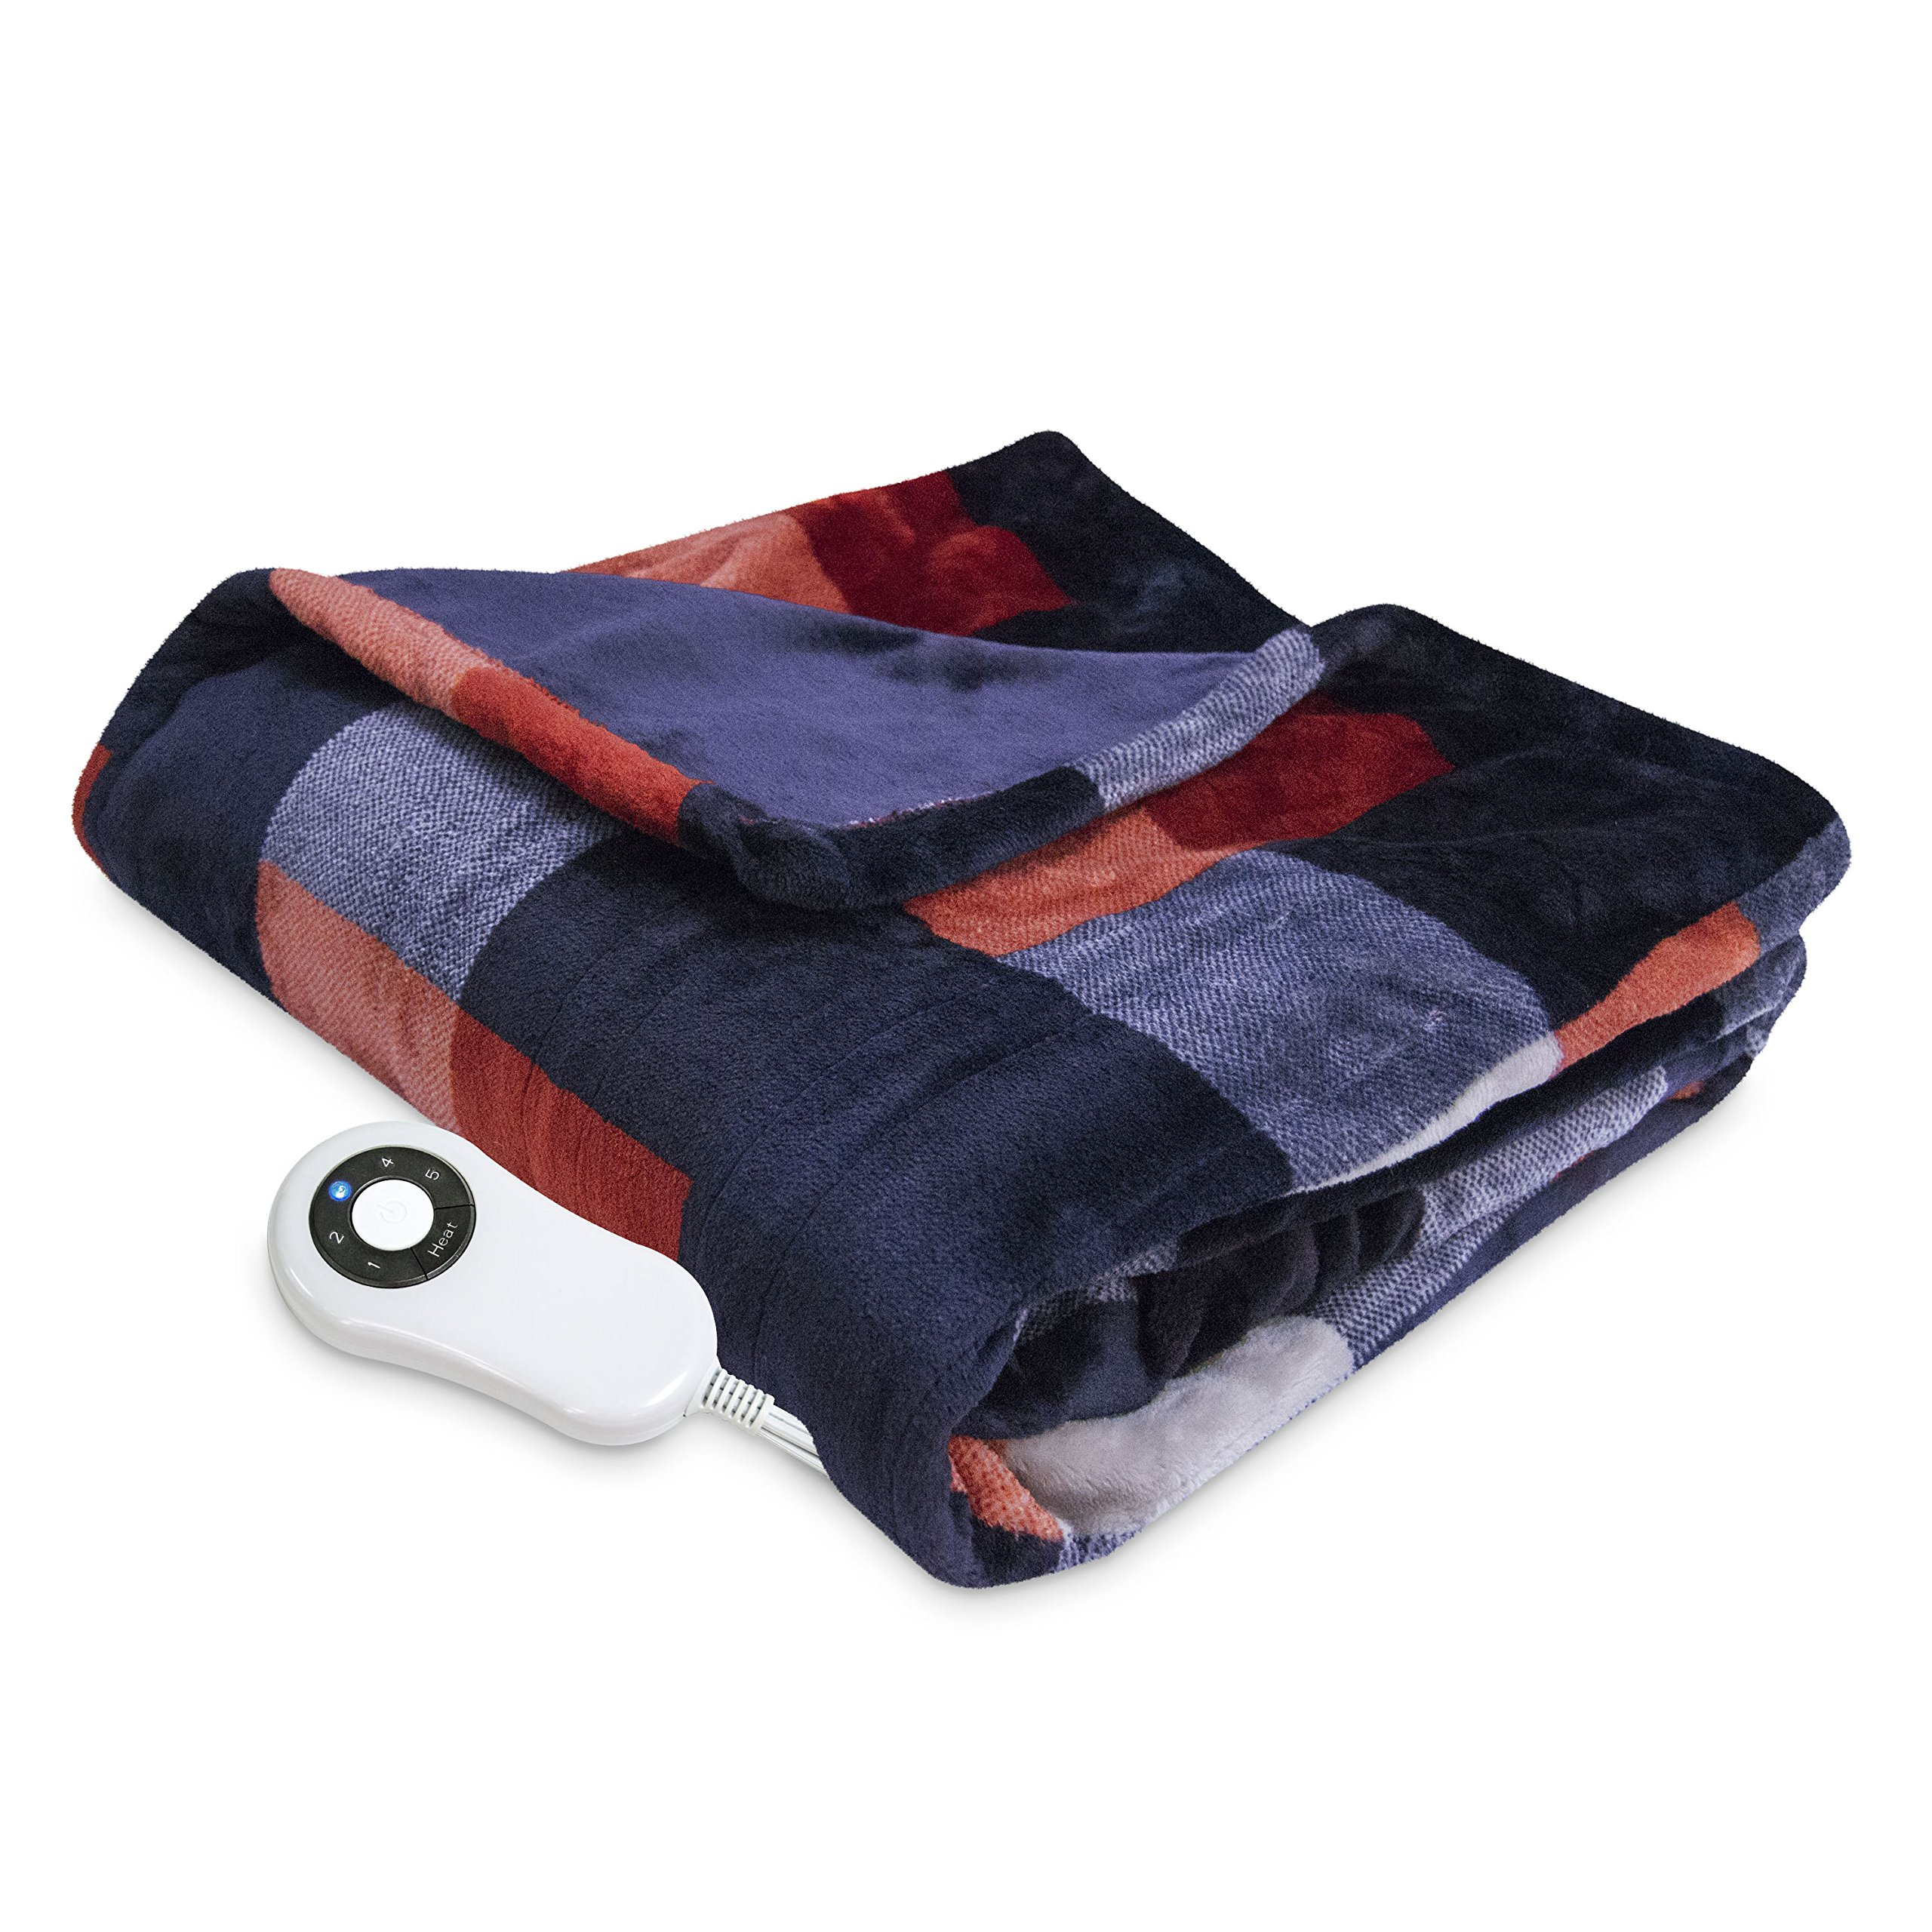 Serta Heated Electric Silky Plush Printed throw with 5 setting controller Buffalo Check/Red Model 0917 by Serta